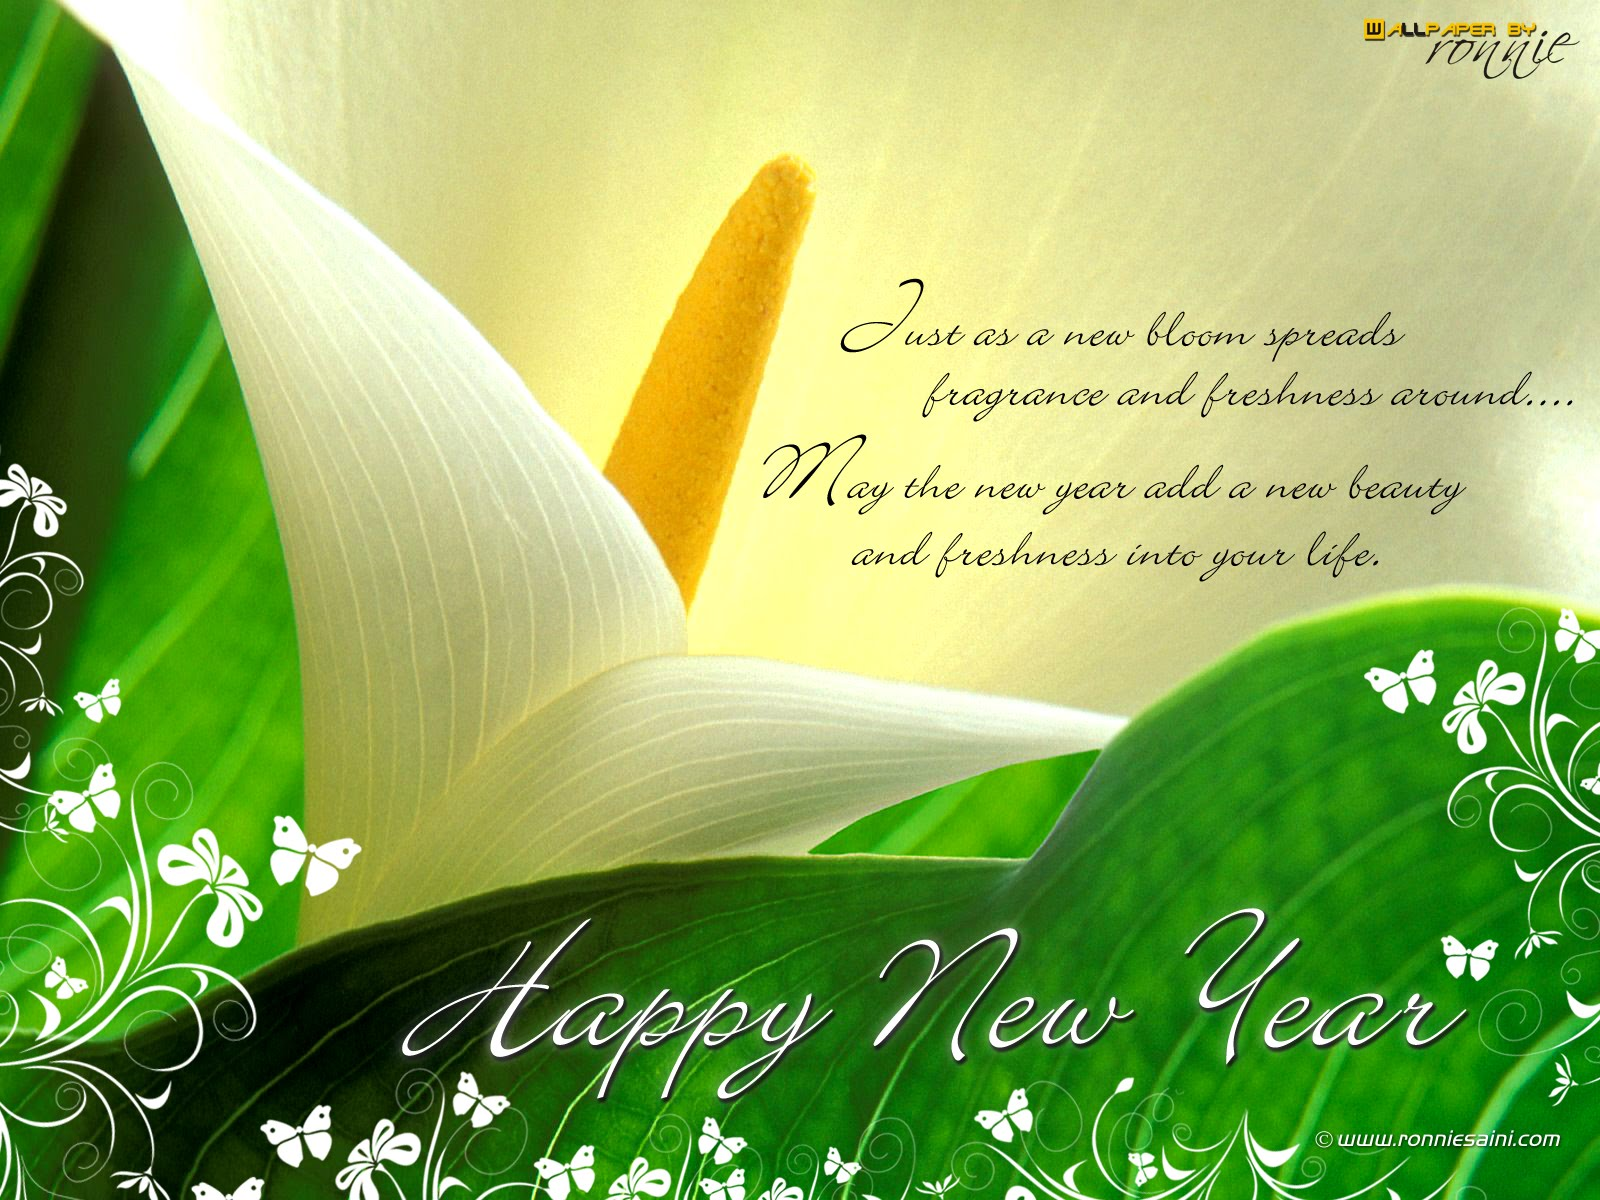 Wallpaper Downloads: HAPPY NEW YEAR GREETINGS WALLPAPER